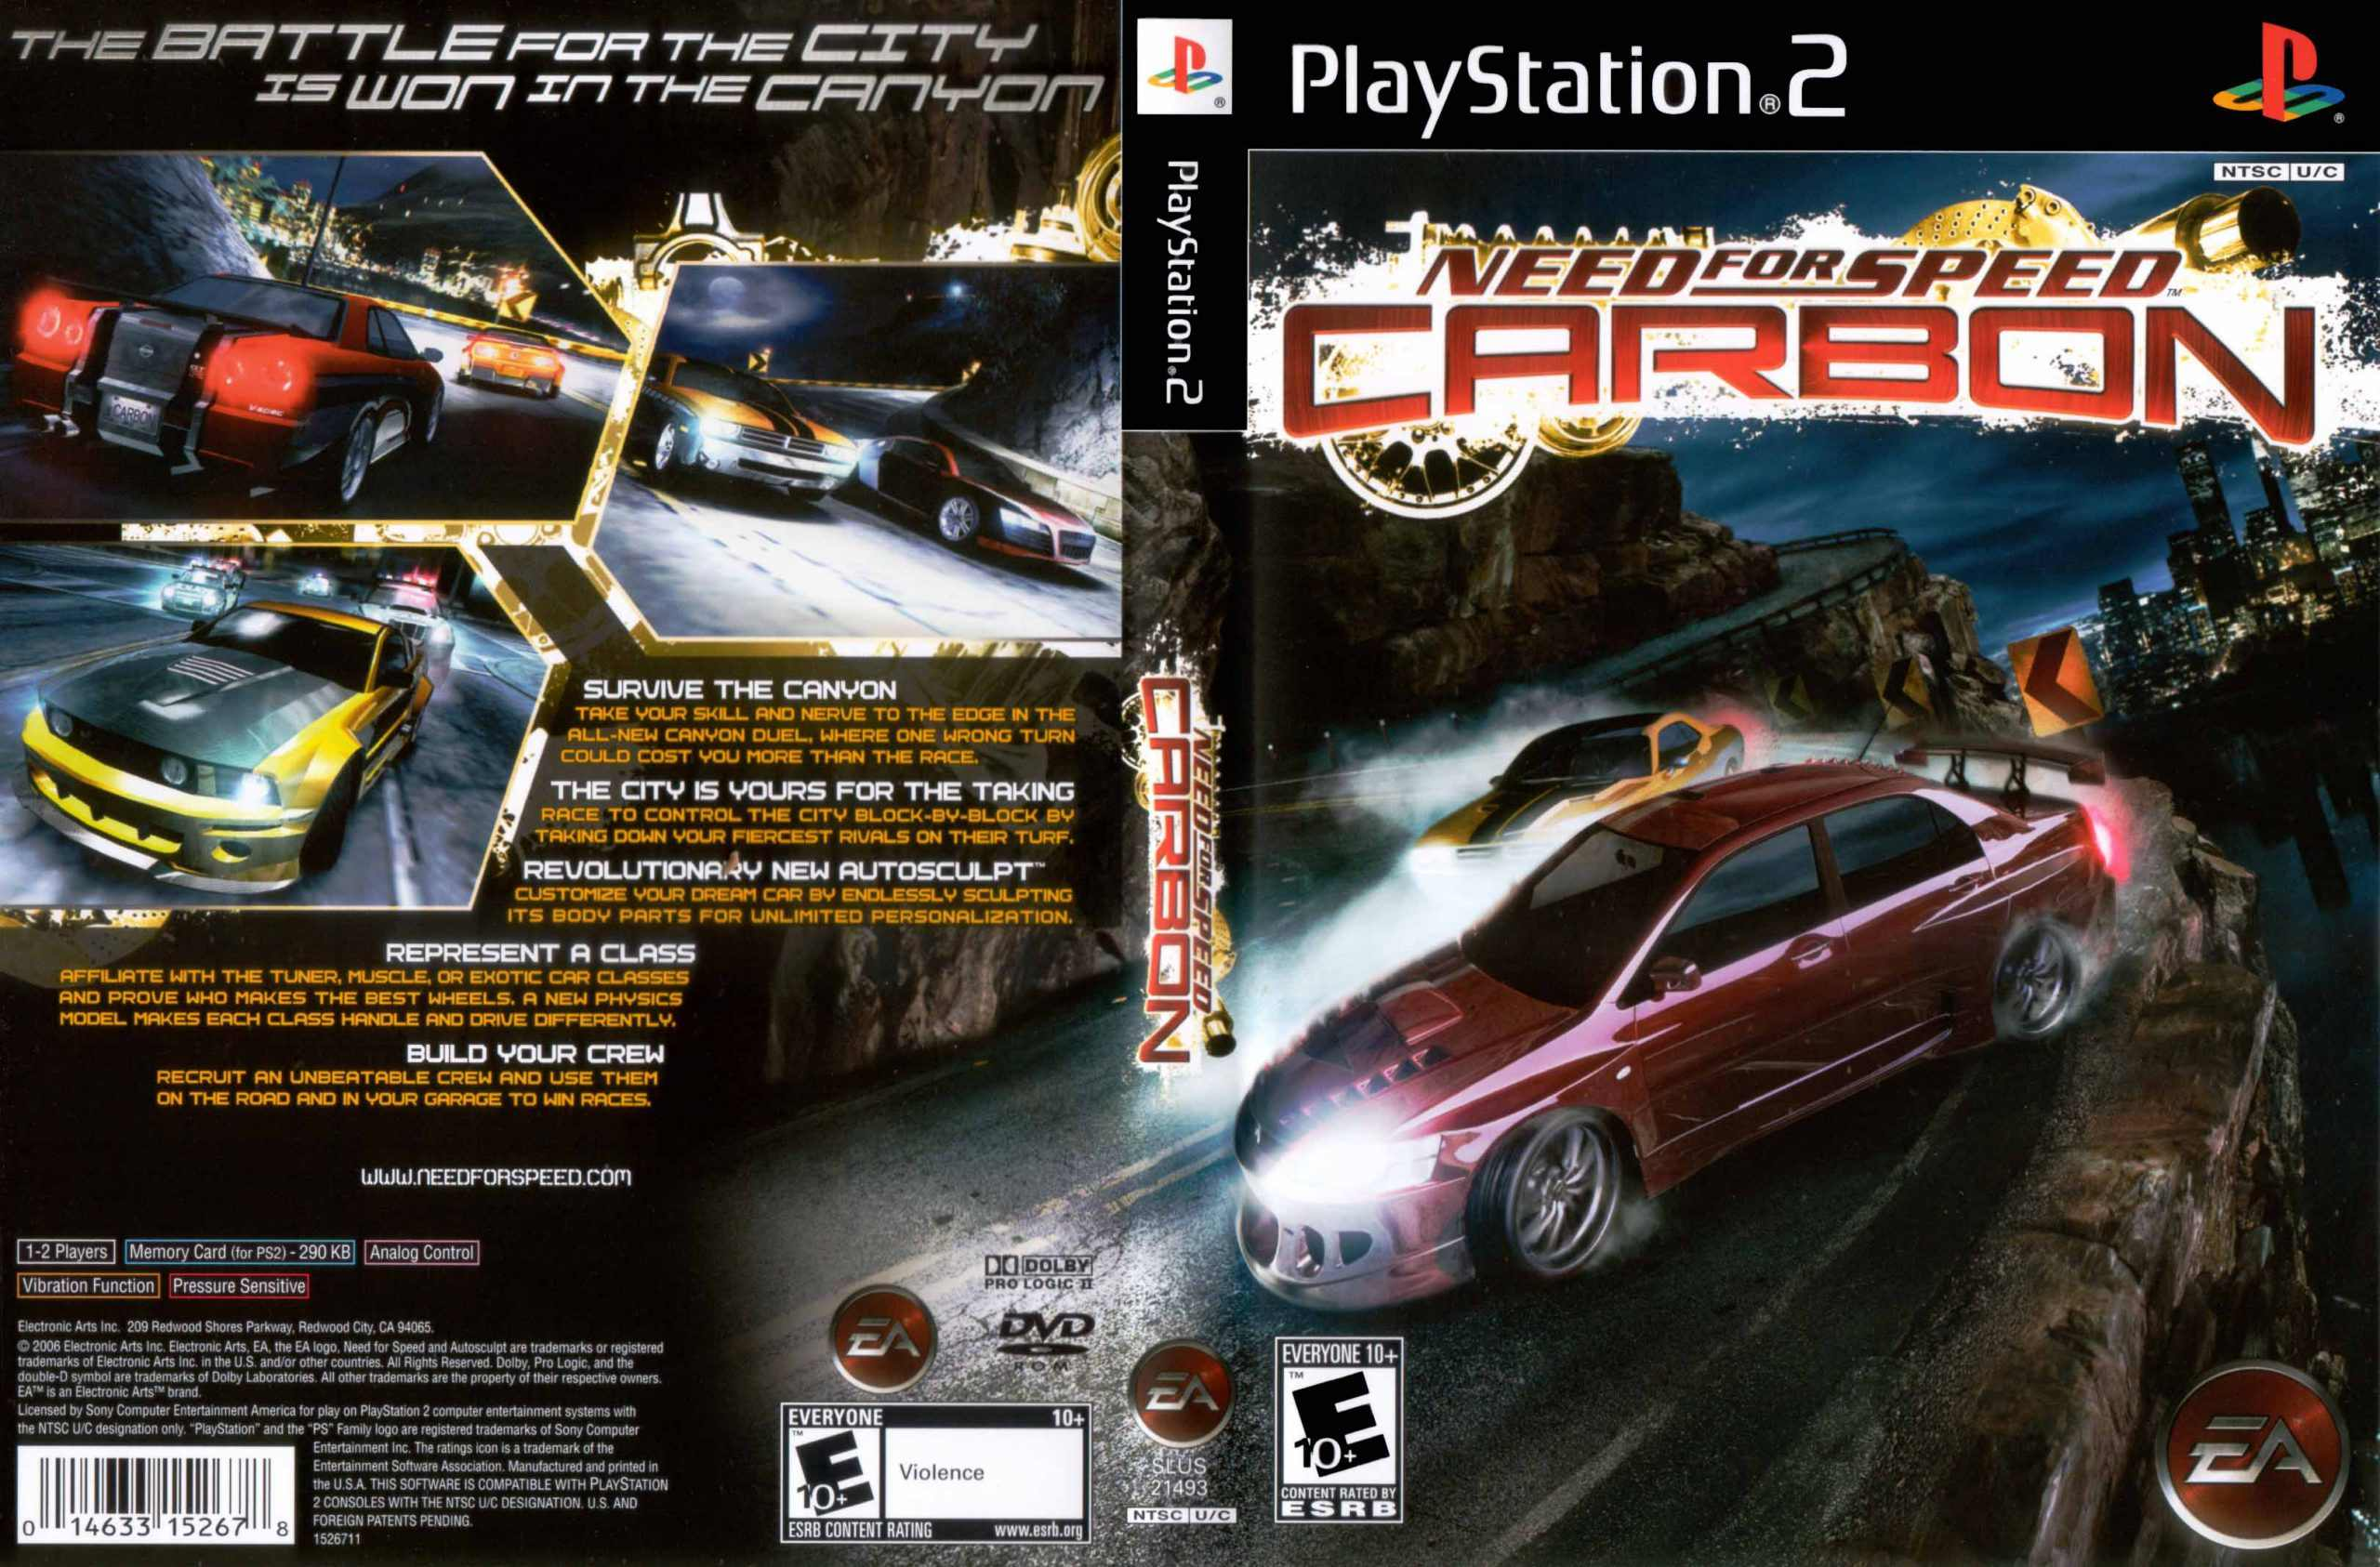 Need For Speed Carbon Eu Ps2 Iso Best Rom Place Playstation